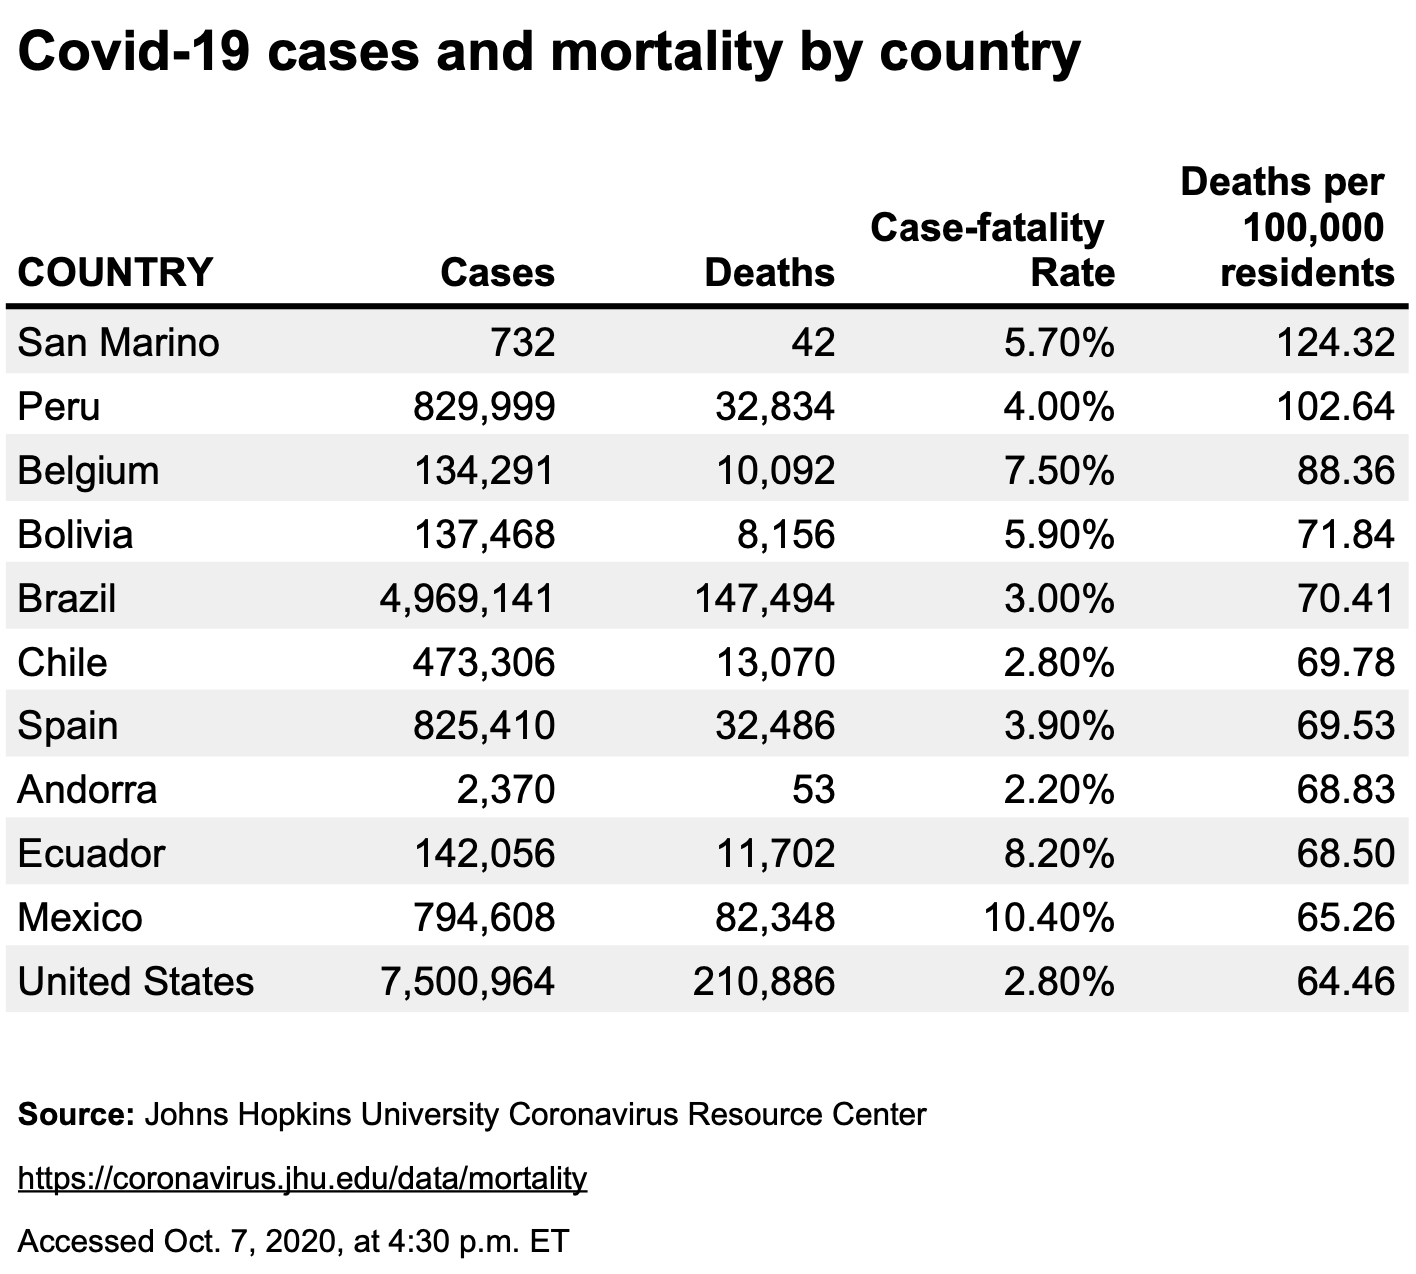 The countries with the 11 highest Covid-19 mortality rates as of Oct. 7 2020.